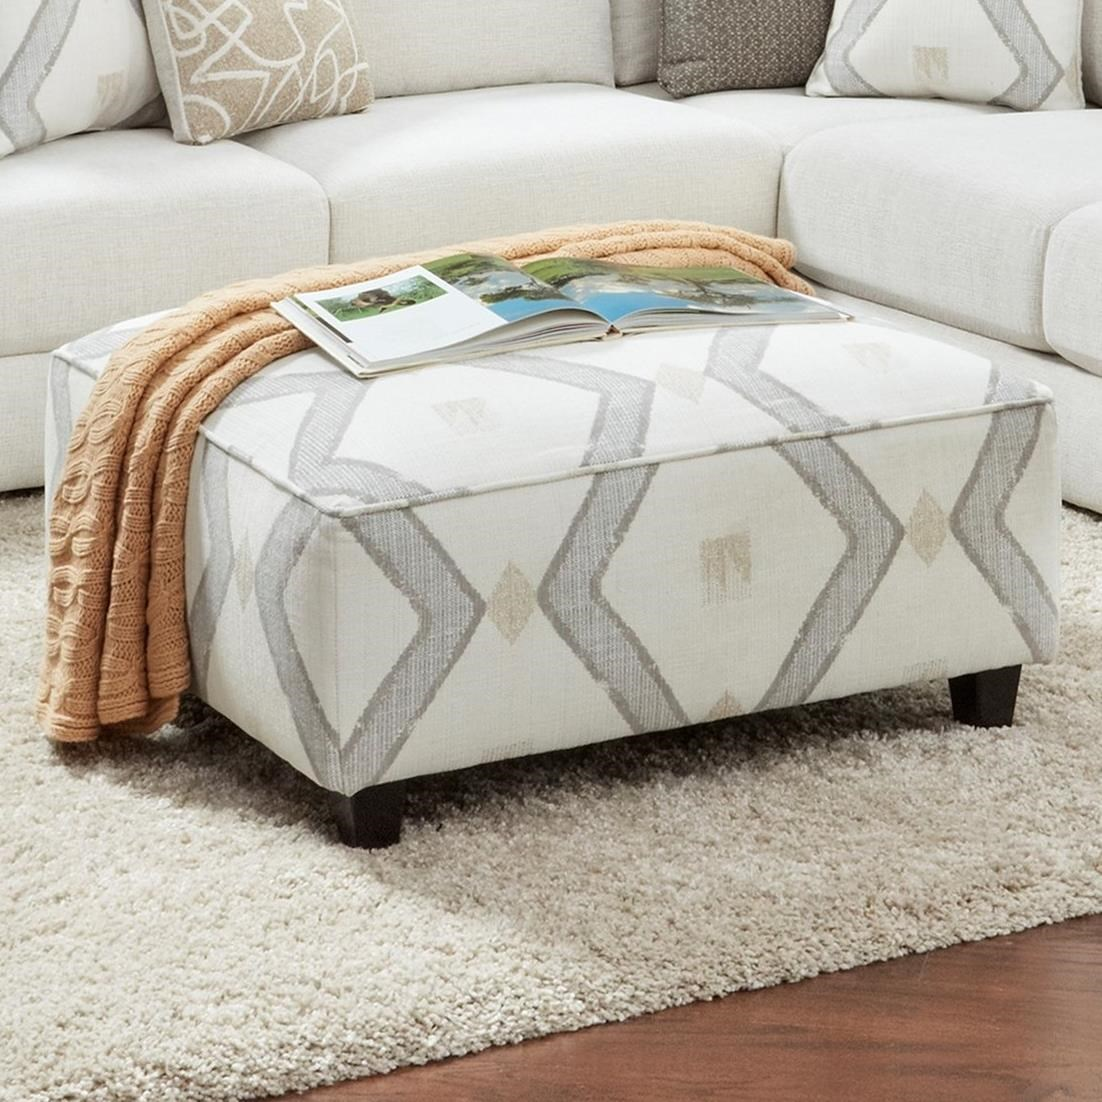 109 Square Ottoman by Fusion Furniture at Becker Furniture